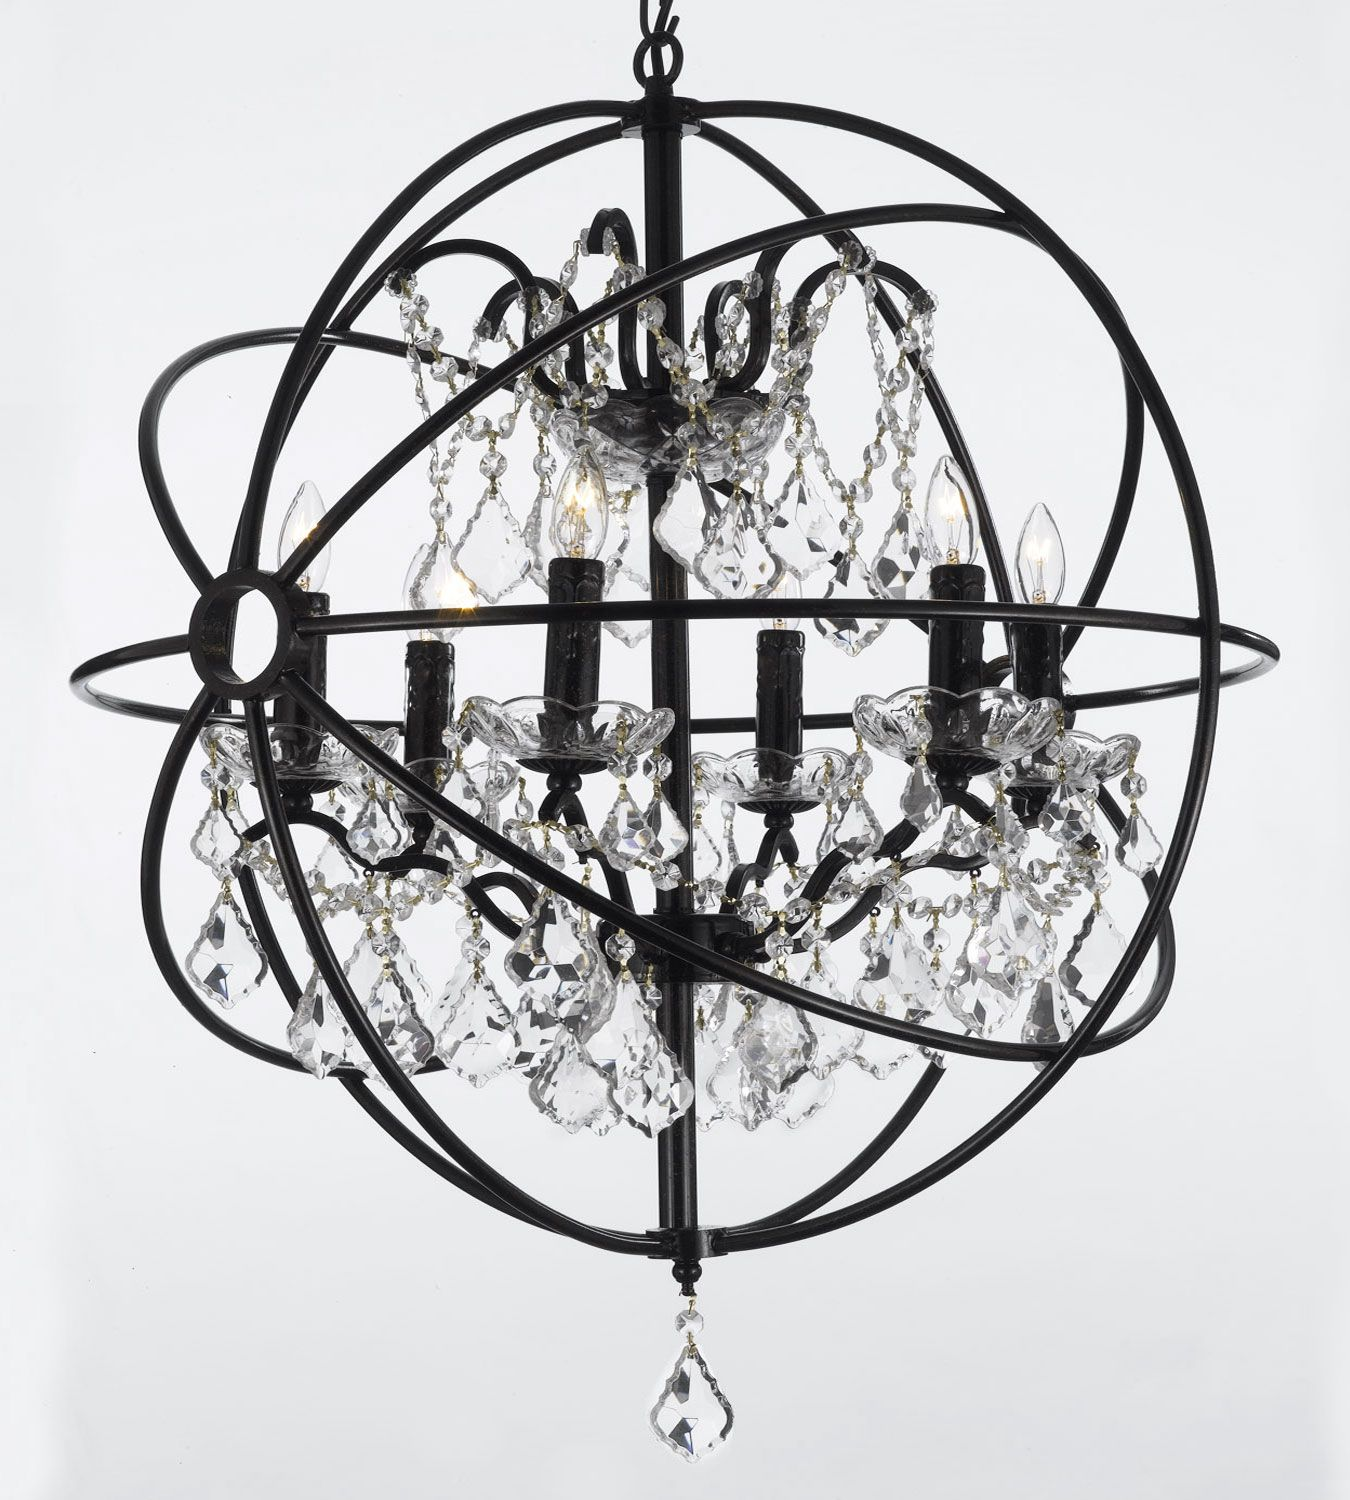 G7 988 6 Wrought With Crystal Iron Orb Chandelier